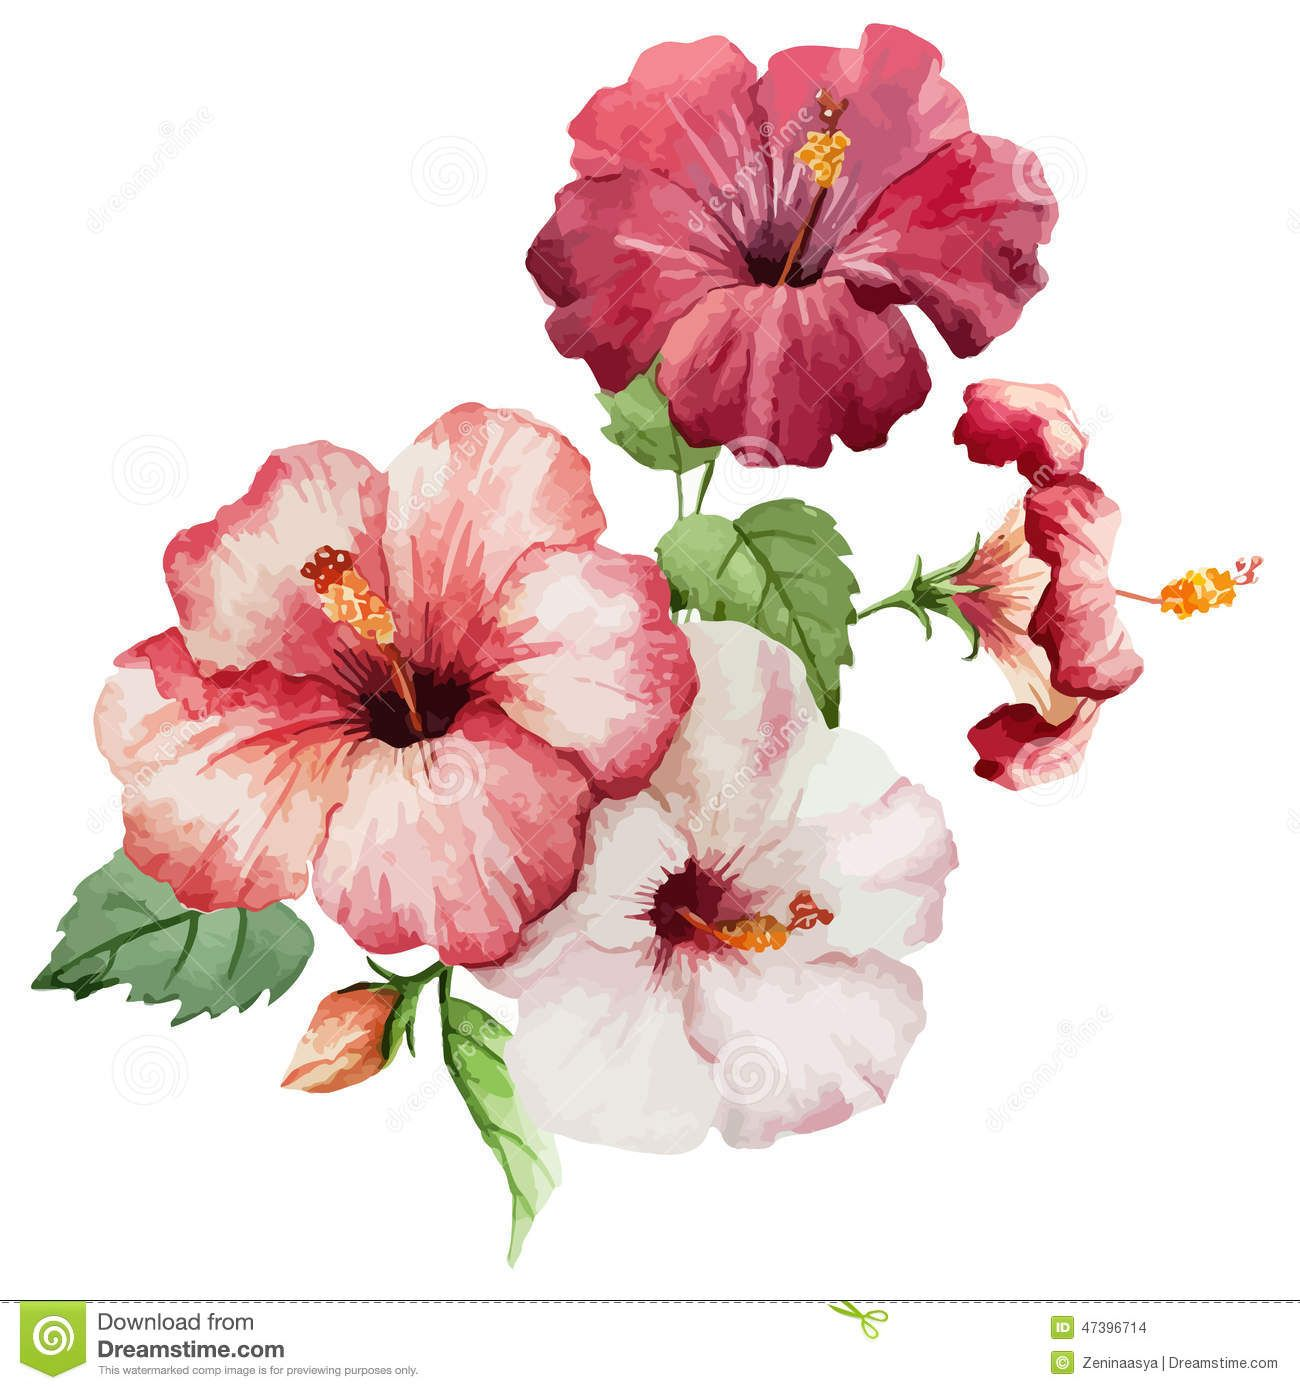 Hibiscus2 Download From Over 52 Million High Quality Stock